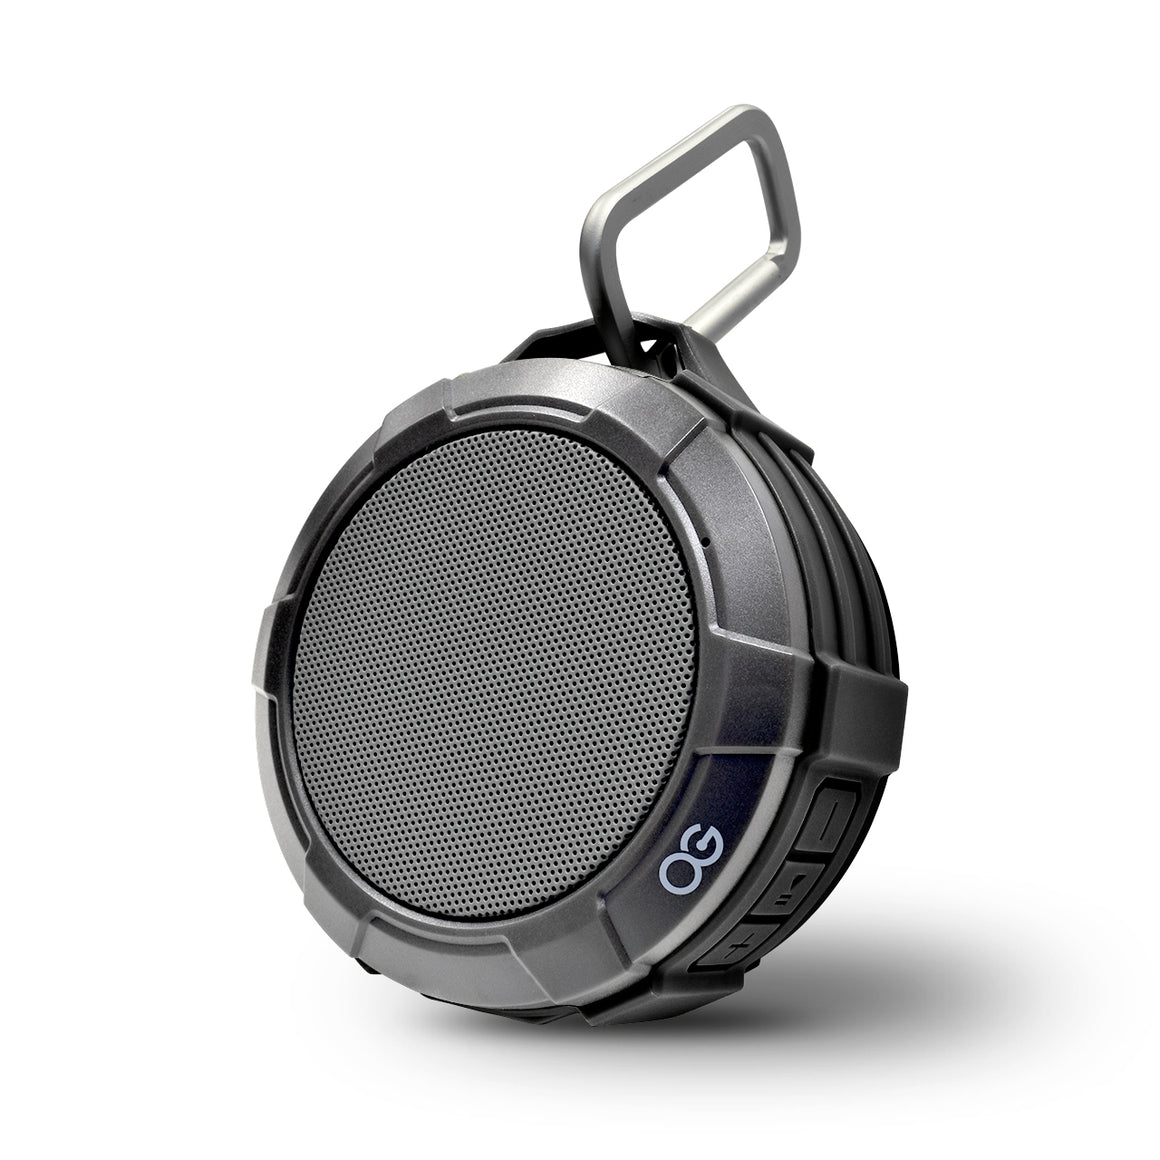 Omnigates Aeon Portable Bluetooth Speaker POD [Black / Gray]